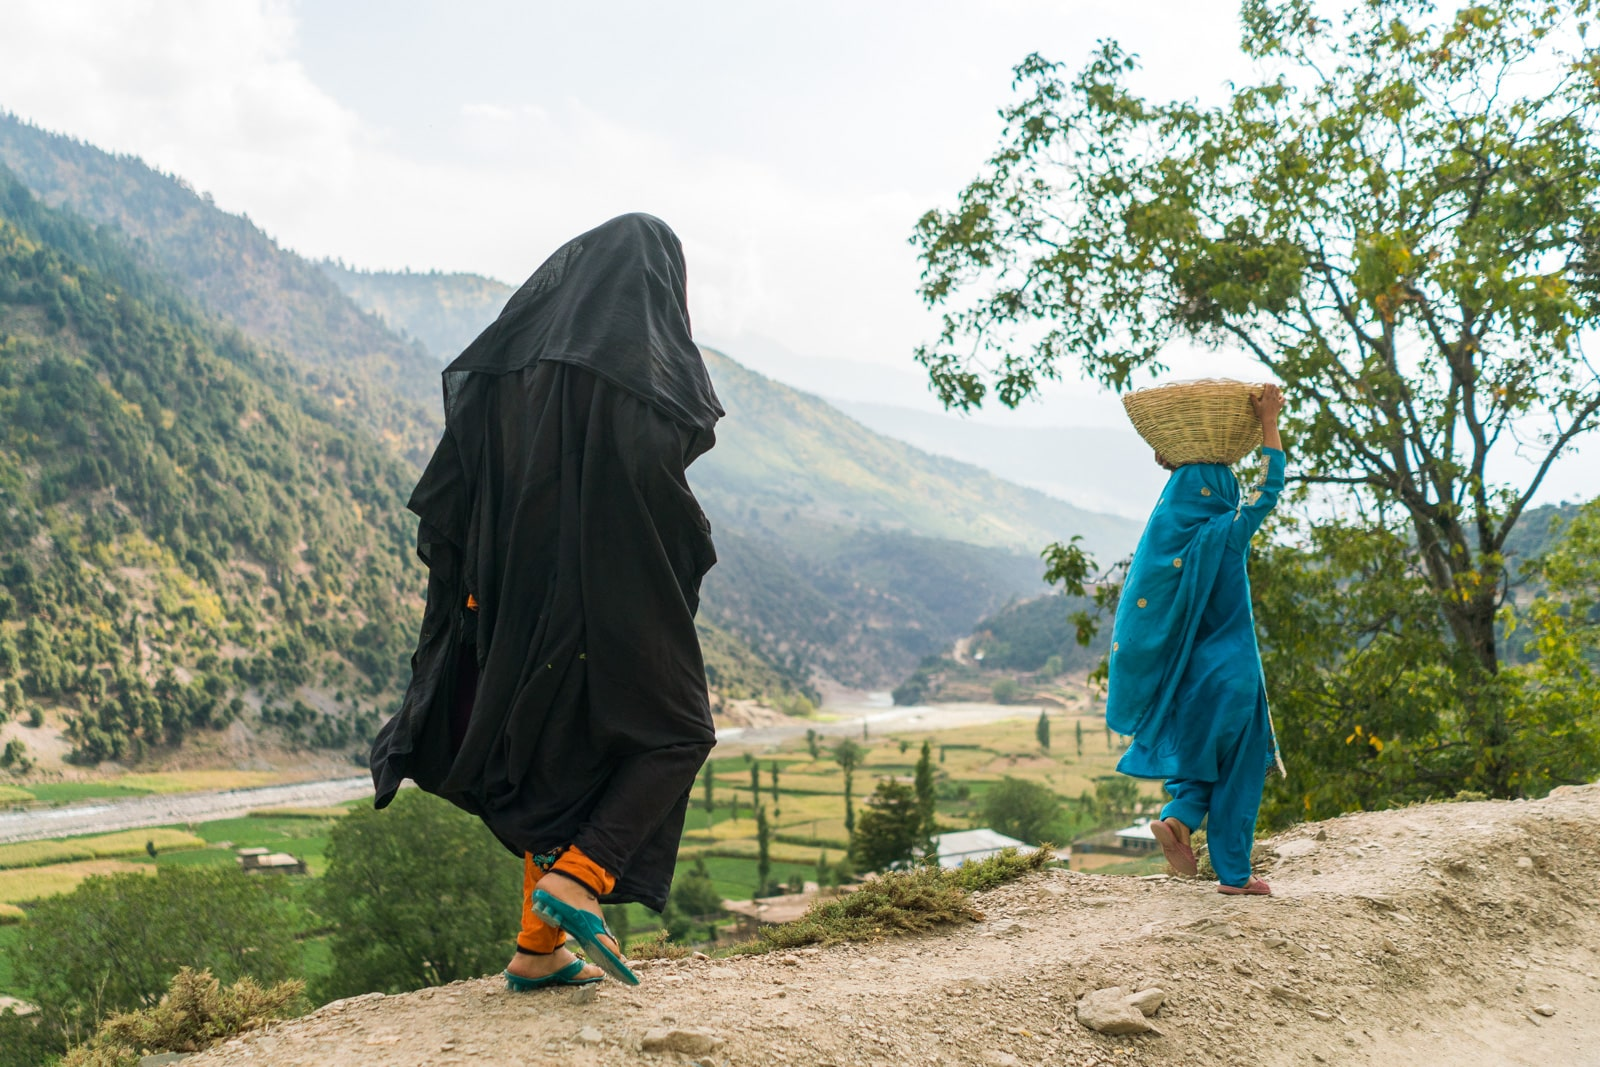 The great divide in Thall, Pakistan - Woman walking in black - Lost With Purpose travel blog